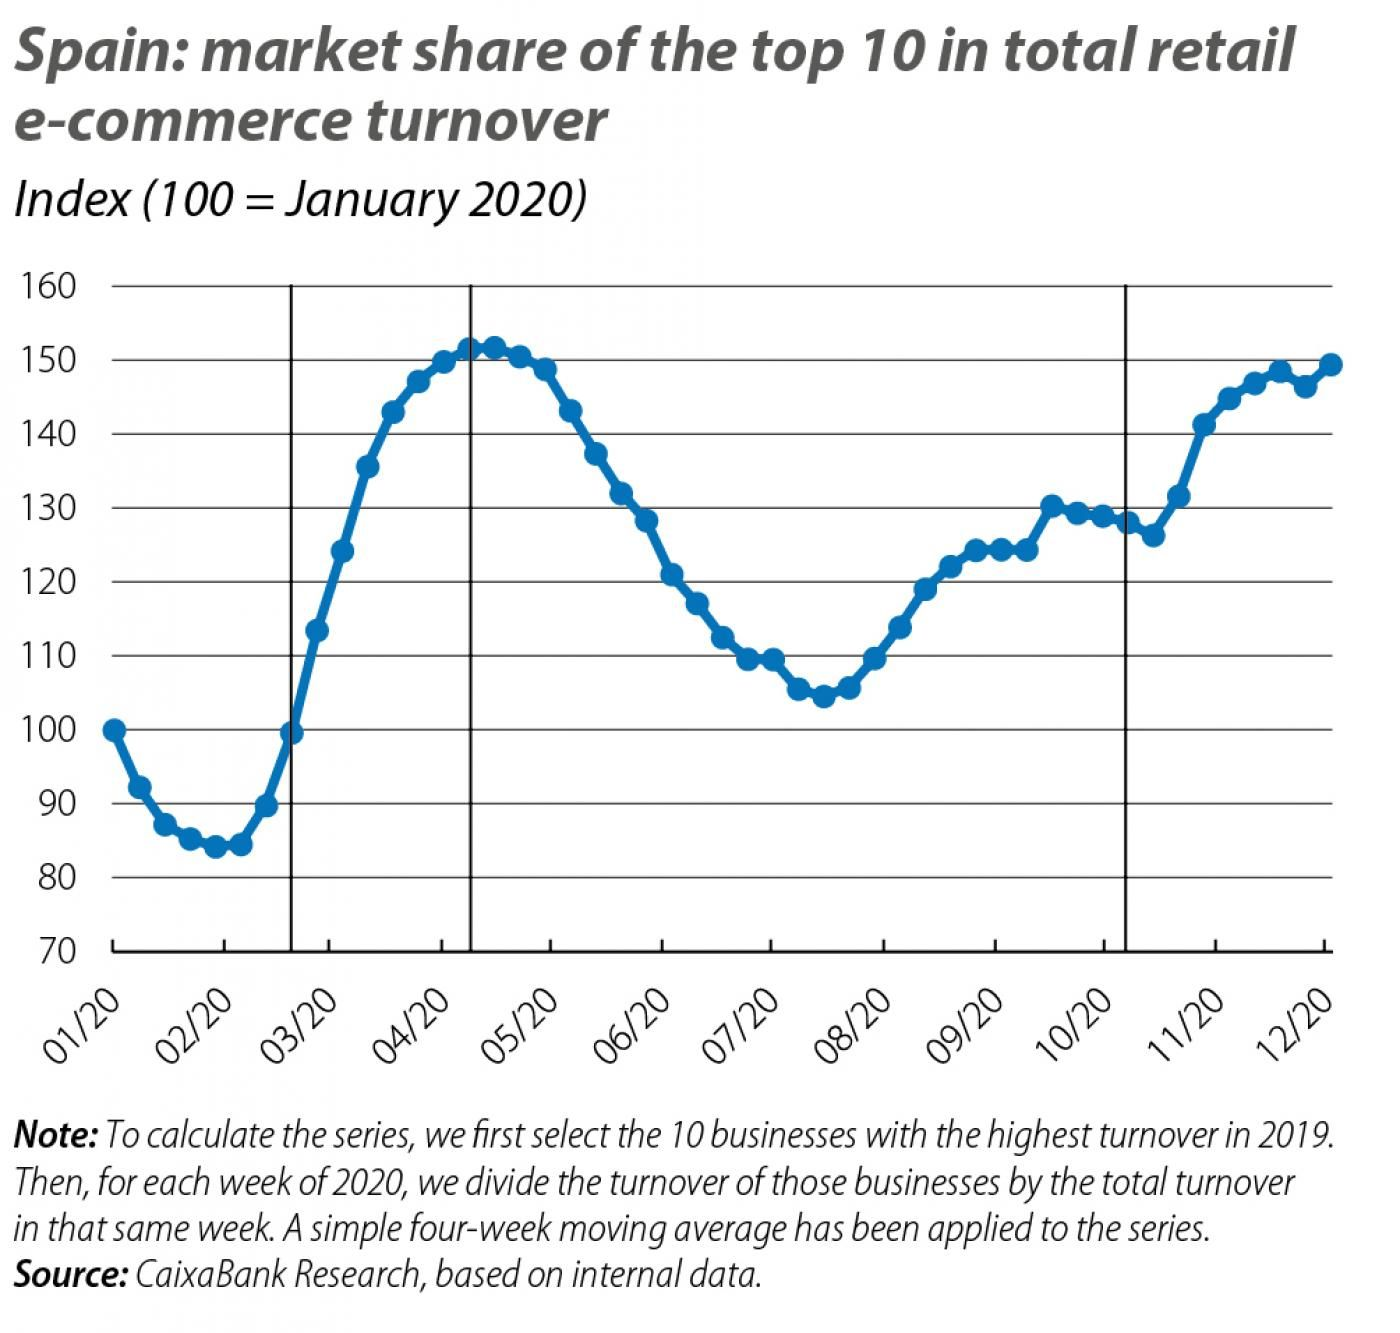 Spain: market share of the top 10 in total retail e-commerce turnover